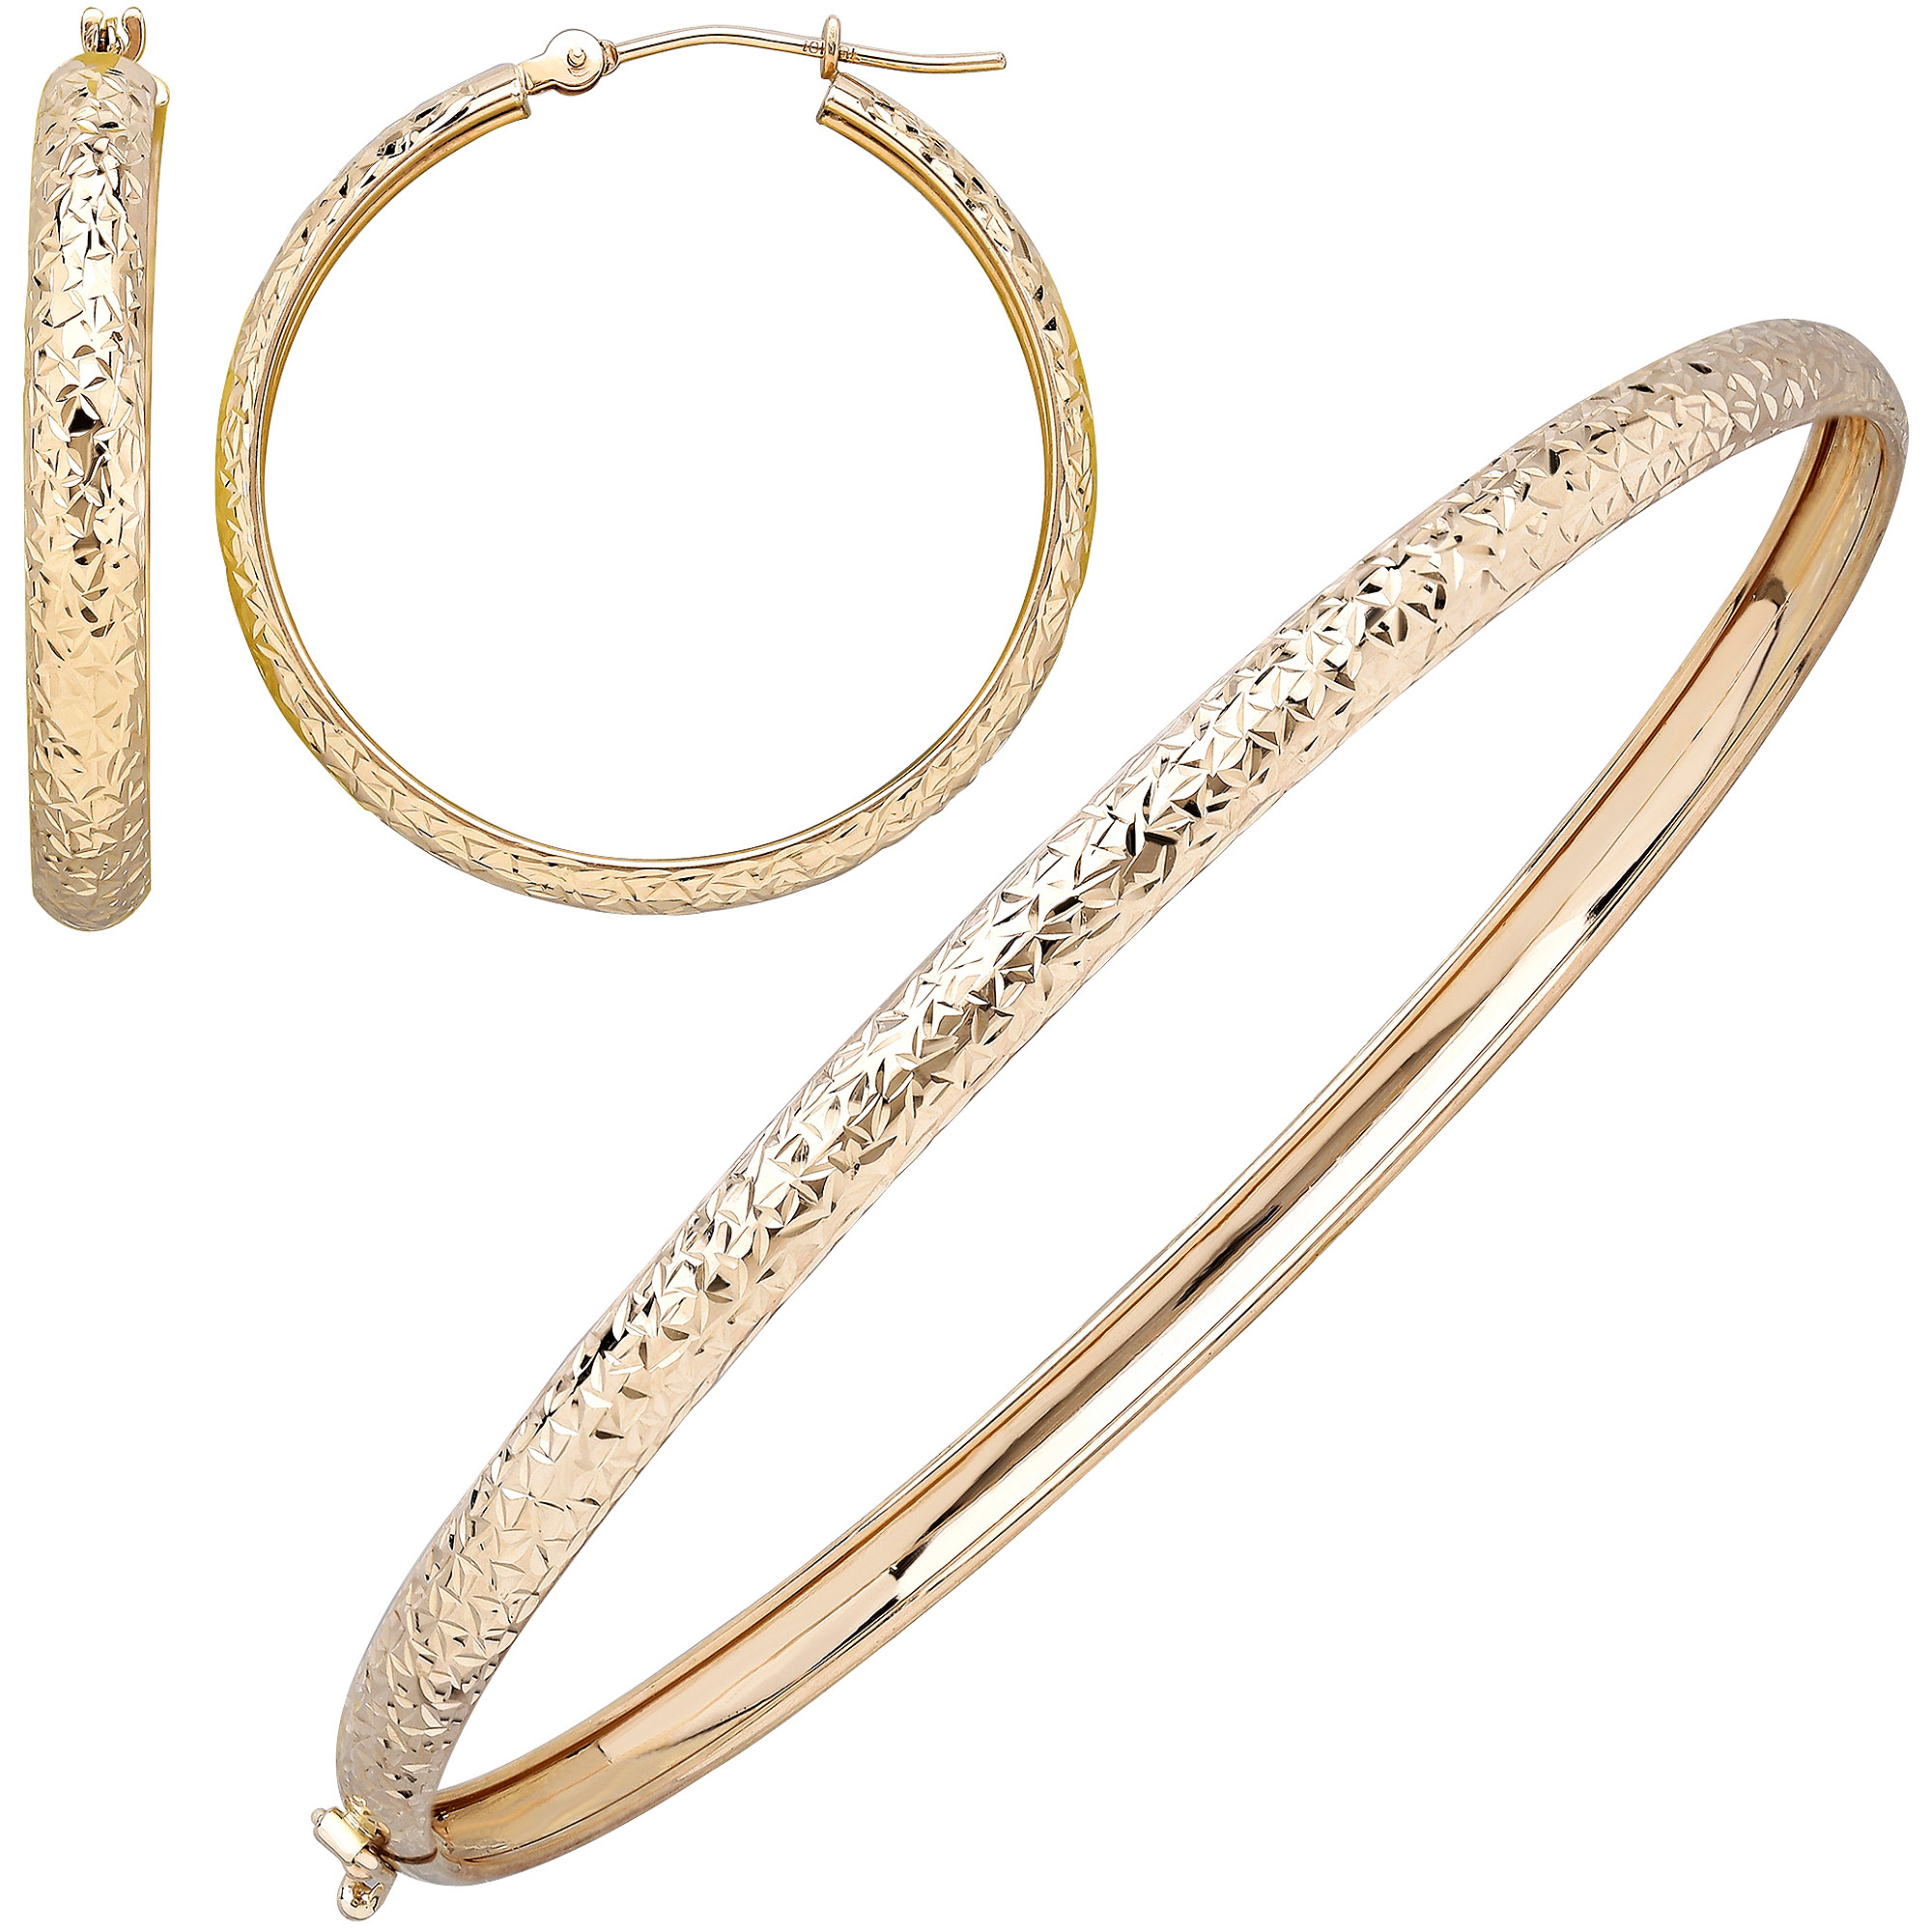 Simply Gold 10kt Yellow Gold Crystal Diamond Cut 4mm Bangle and 4mm x 30mm Hoop Earrings Set